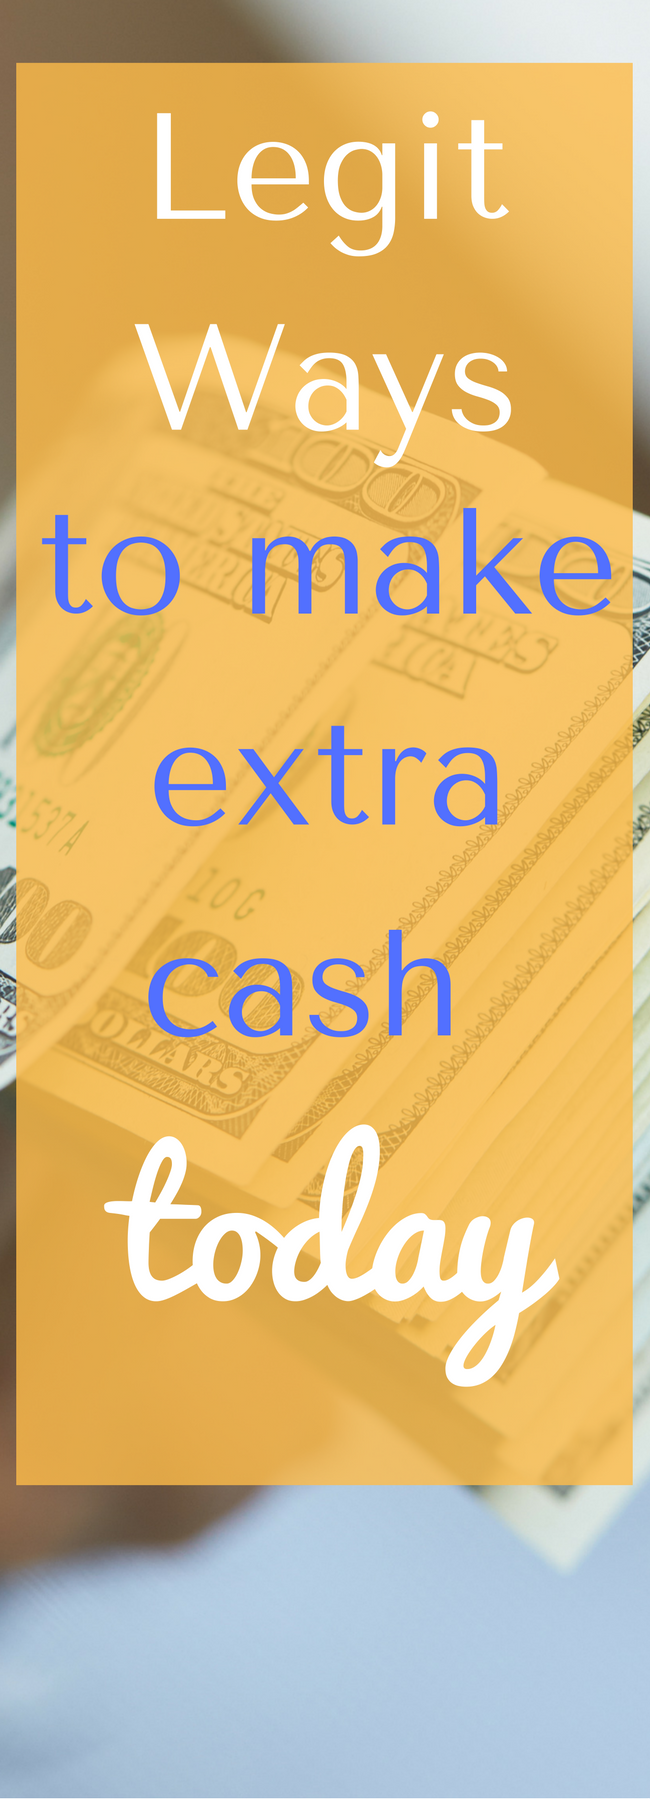 Legit Ways to Make Extra Cash Today